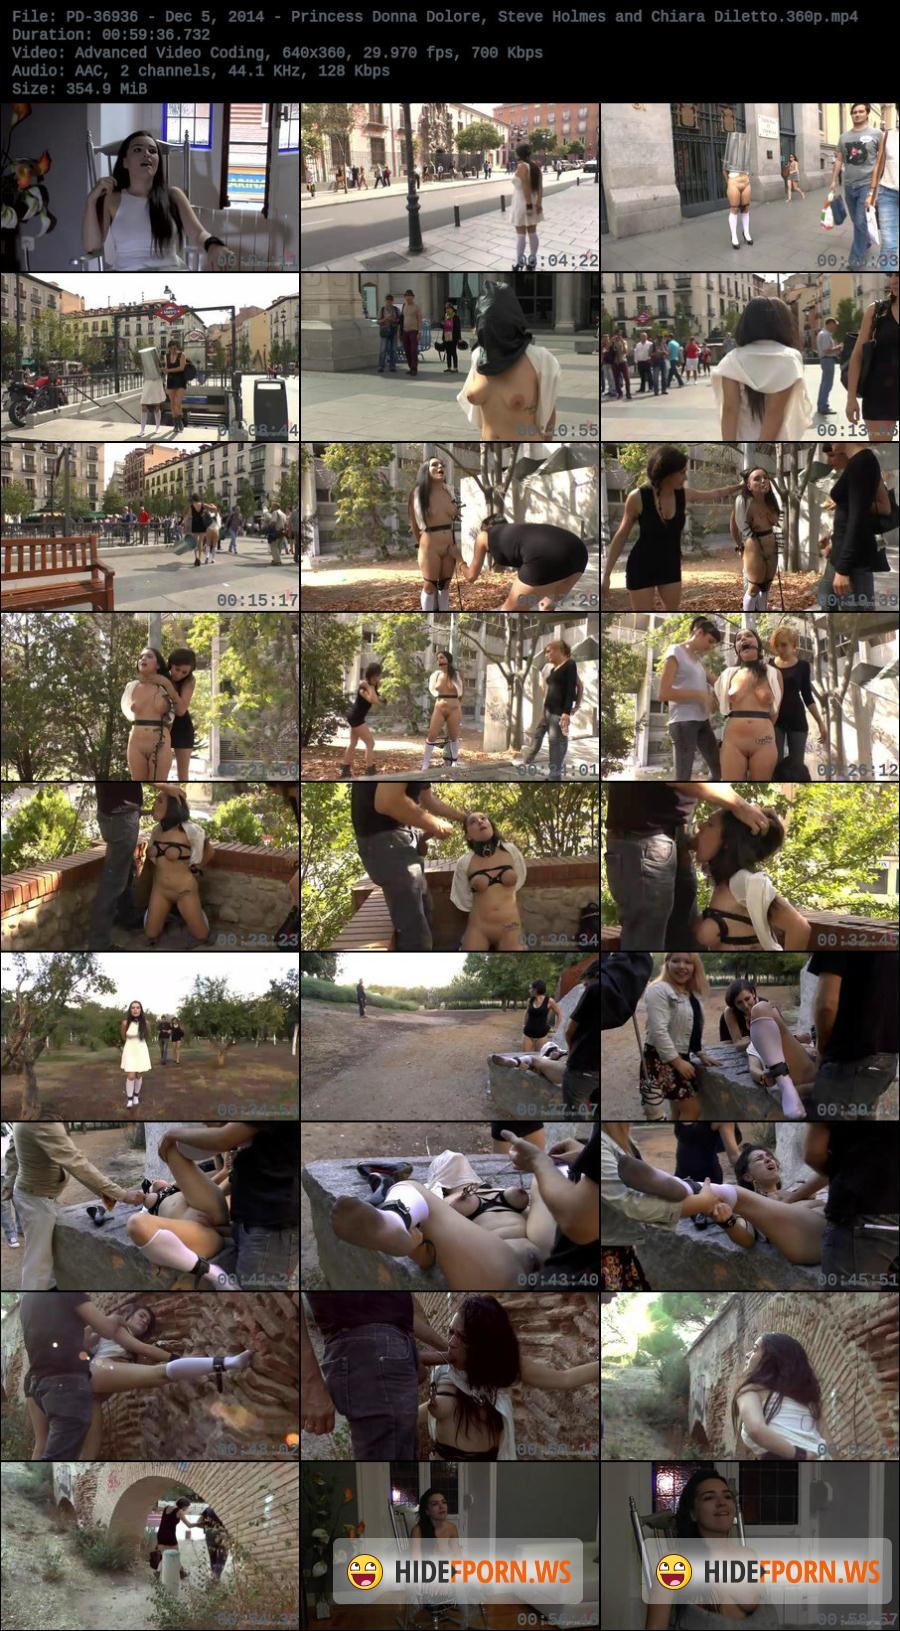 Kink.com - Chiara Diletto, Princess Donna Dolore, Steve Holmes - Sexy Spanish Slut Chiara fully exposed on the streets of Madrid [SiteRip]